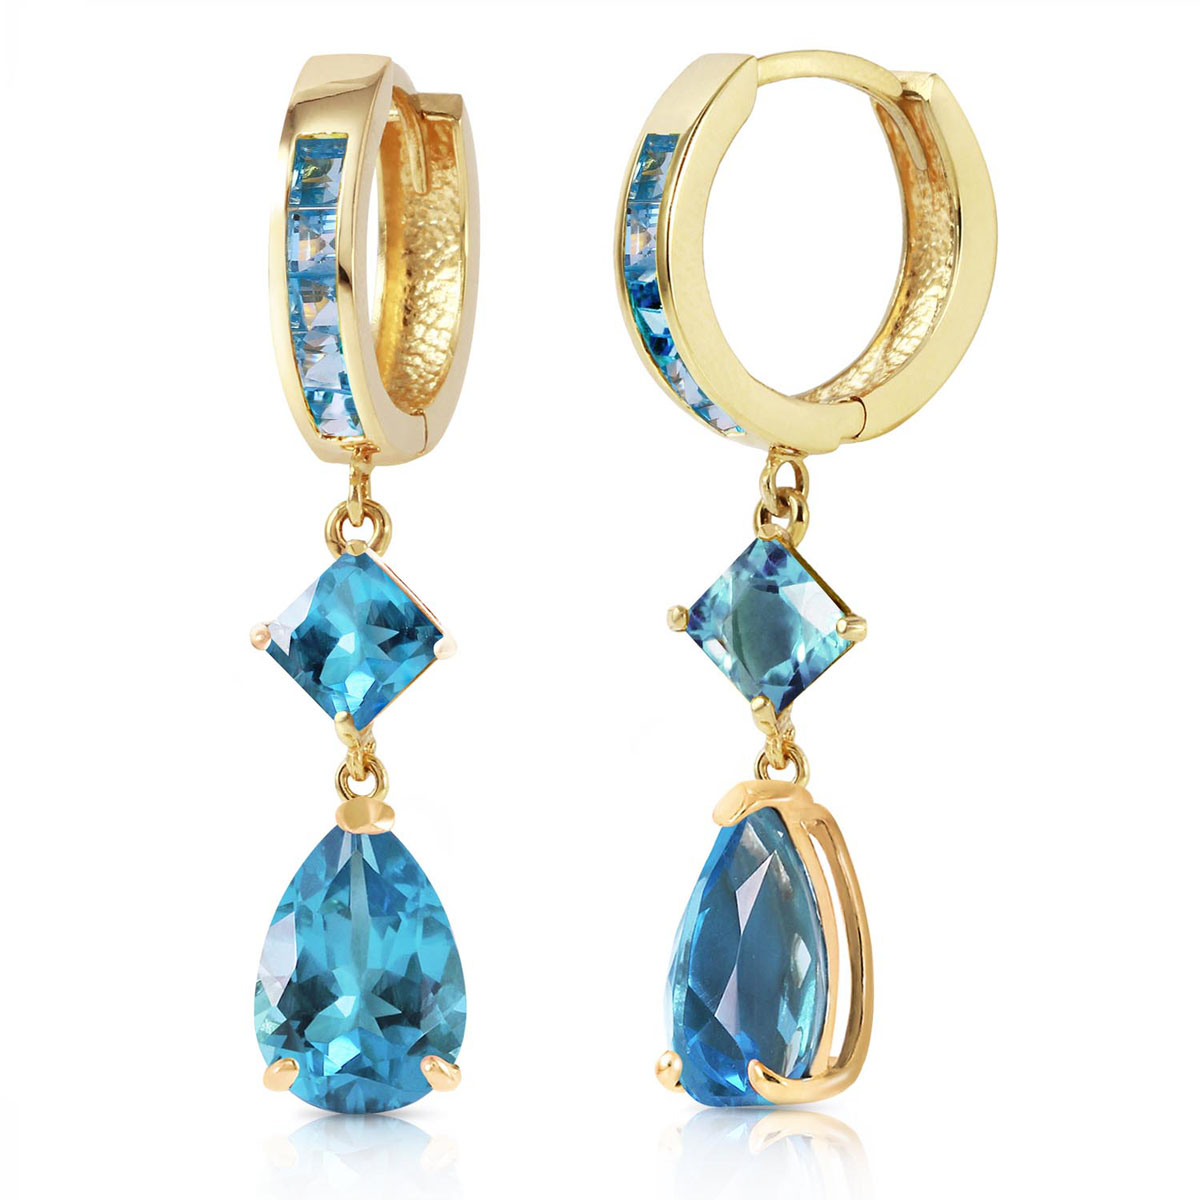 Blue Topaz Droplet Huggie Earrings 5.62 ctw in 9ct Gold